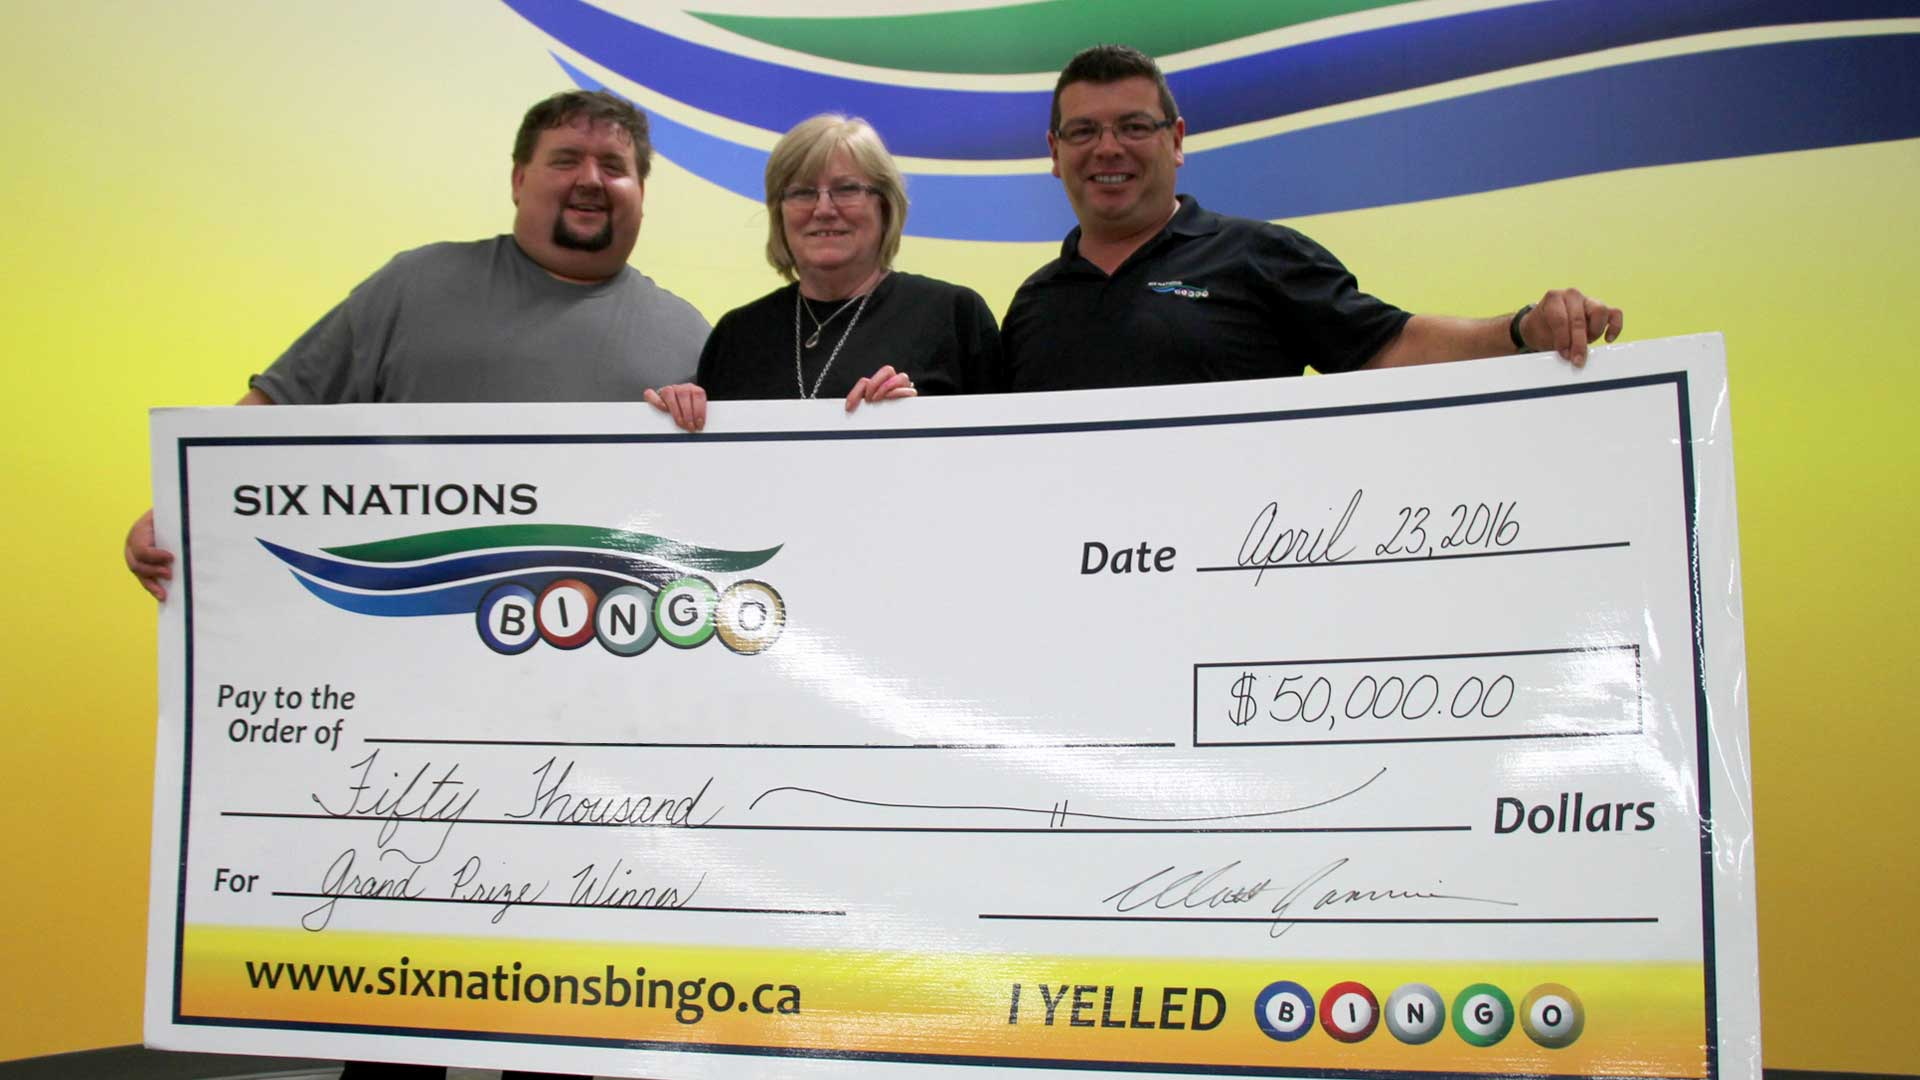 Six Nations Bingo Jackpot Winners